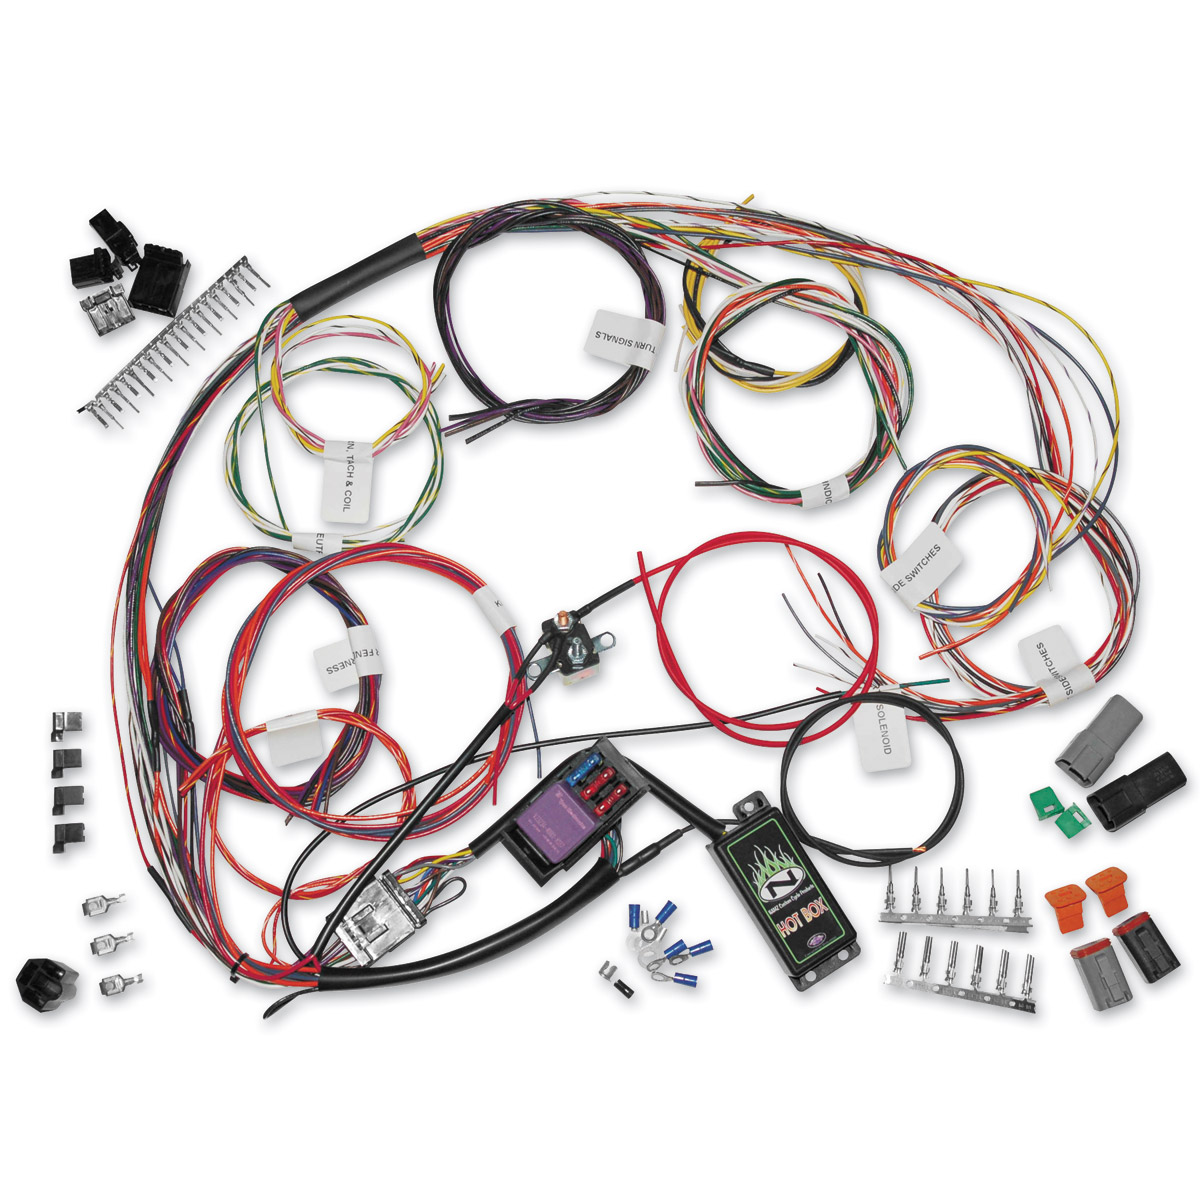 745 072_A namz custom cycle complete bike wiring harness kit 745 072 j&p custom wiring harness at mifinder.co